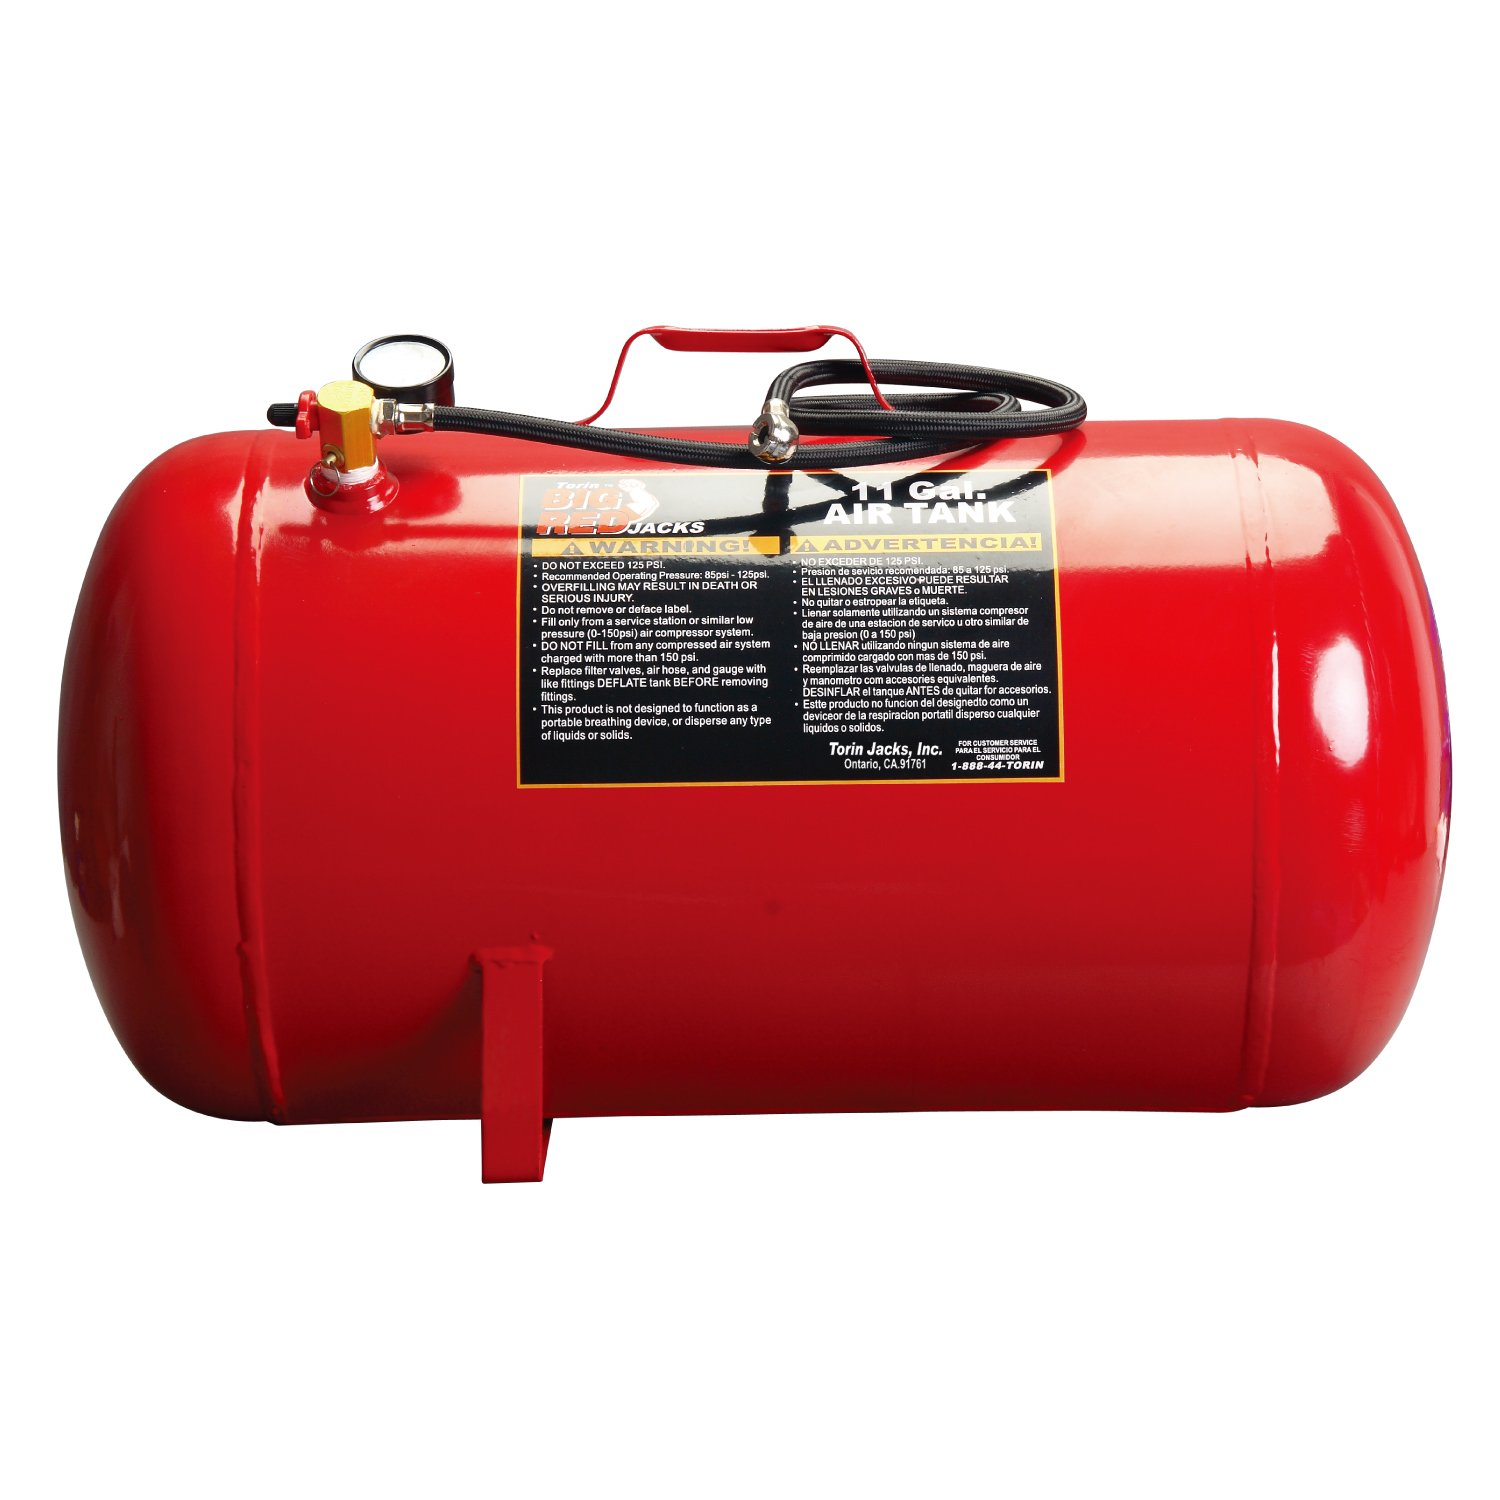 Torin Big Red Portable Horizontal Air Tank with 50'' Hose, 11 Gallon Capacity by Torin